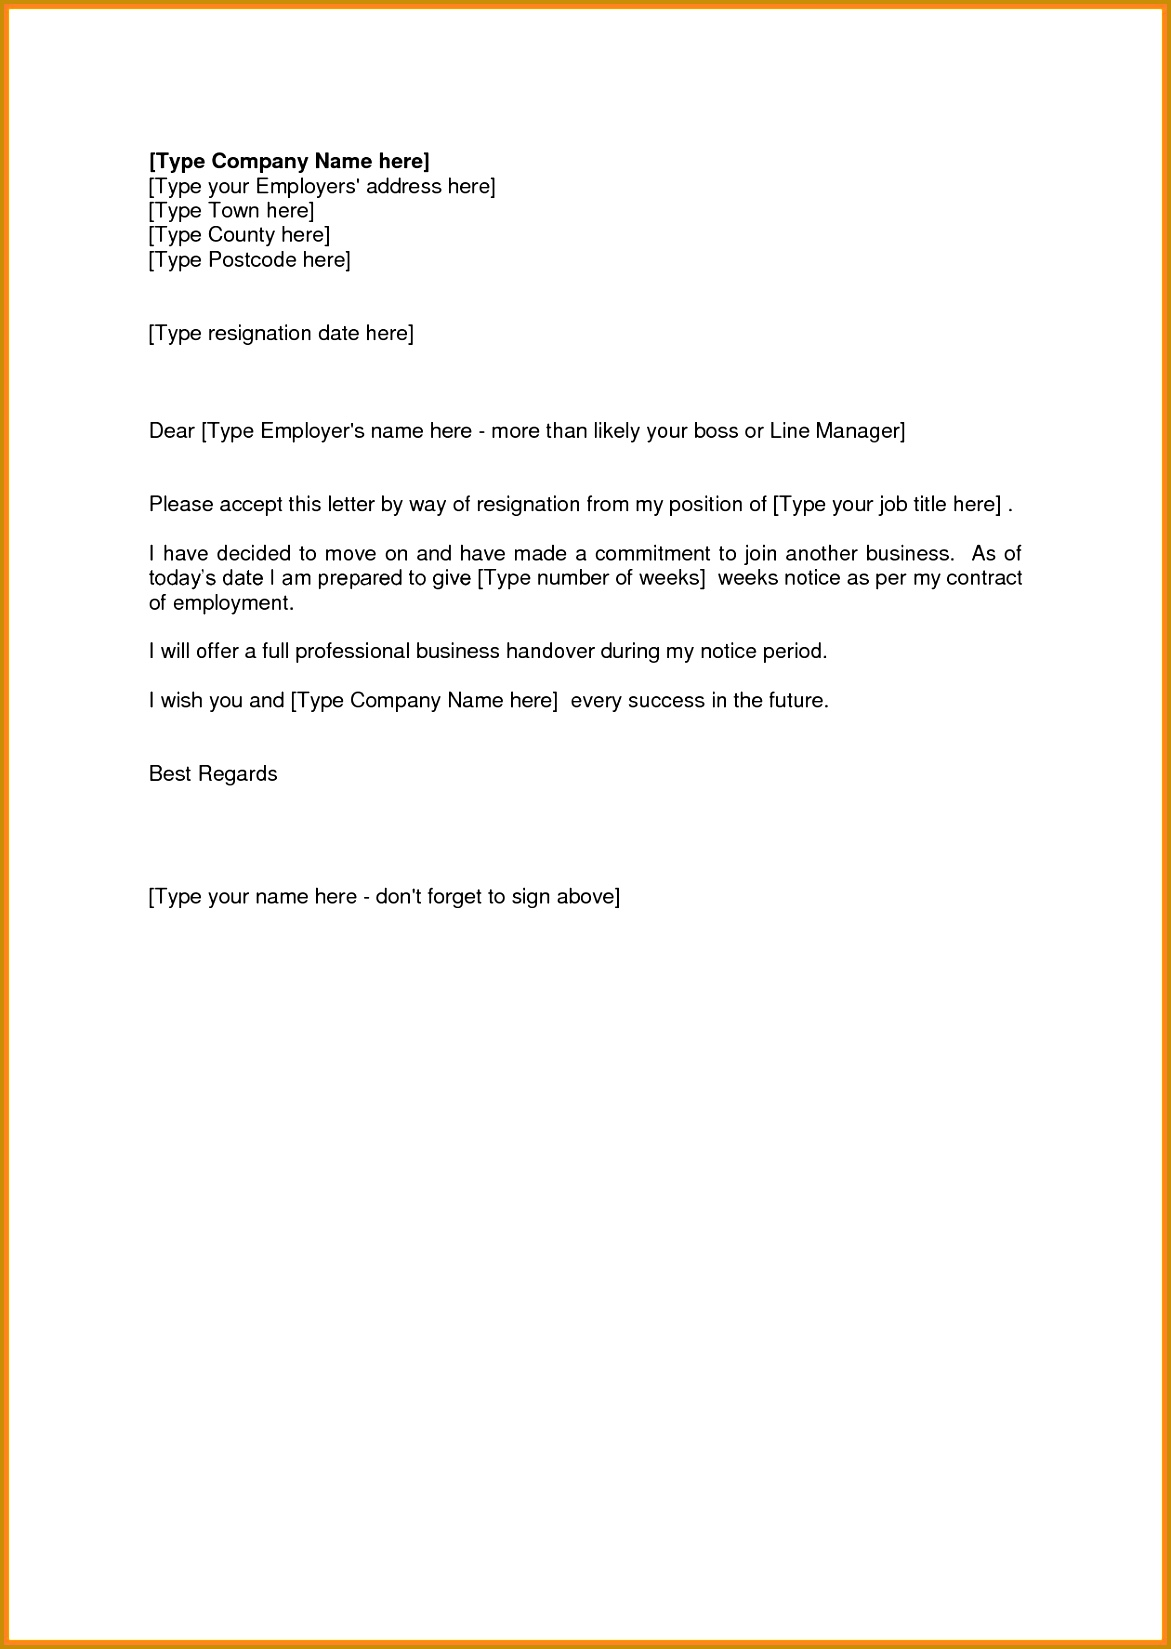 Sample Resignation Letter 2 Weeks Notice 4 Sample Resignation Letter 2 Weeks Notice Pdf 16491171